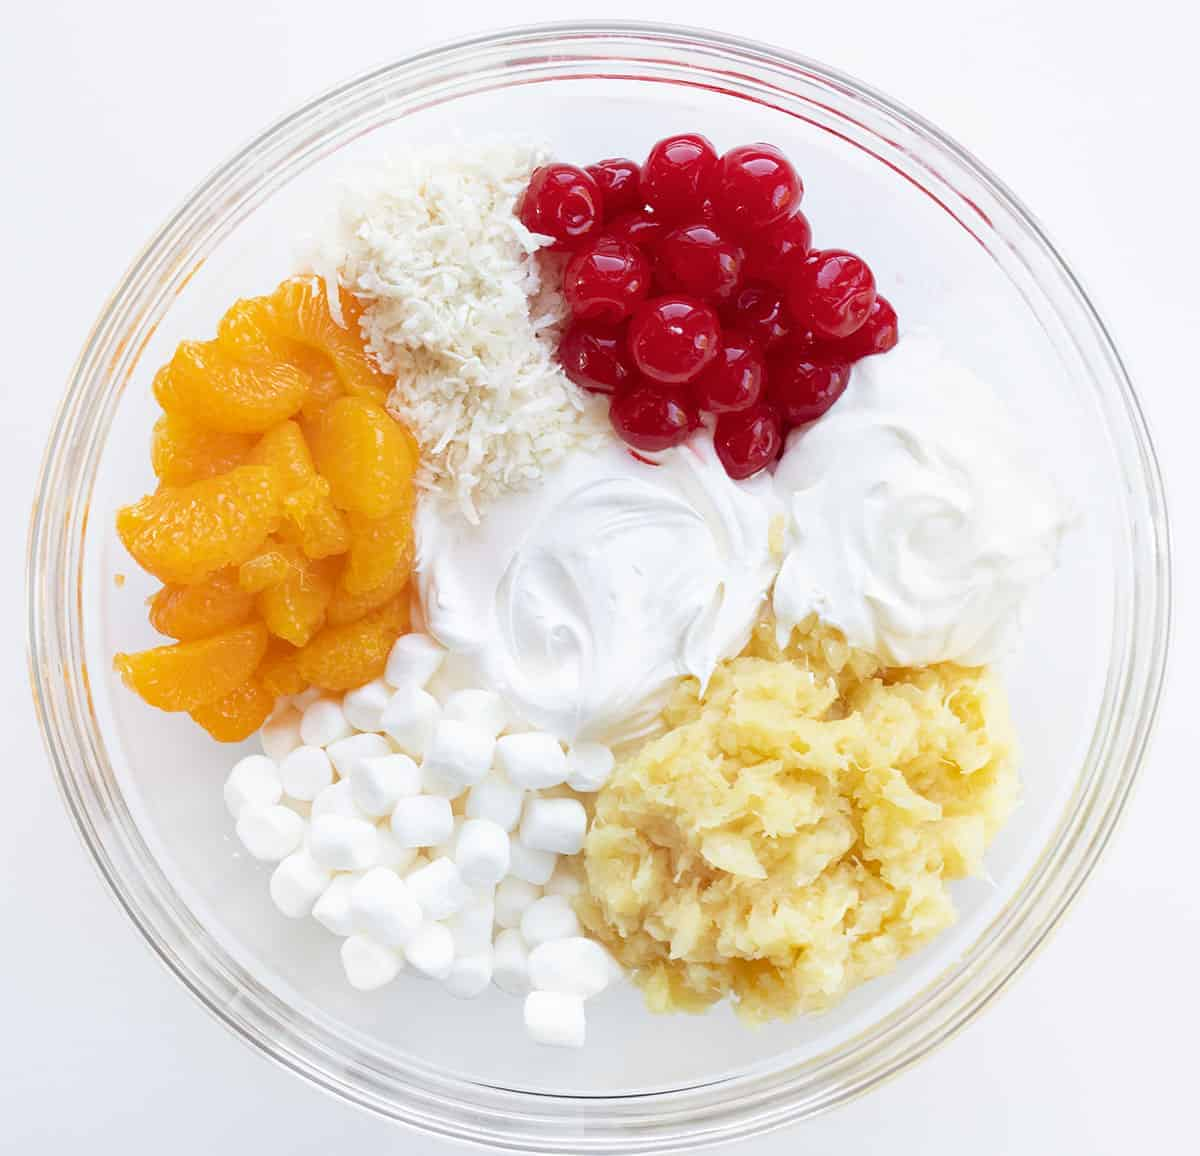 Raw Ingredient for Ambrosia Salad